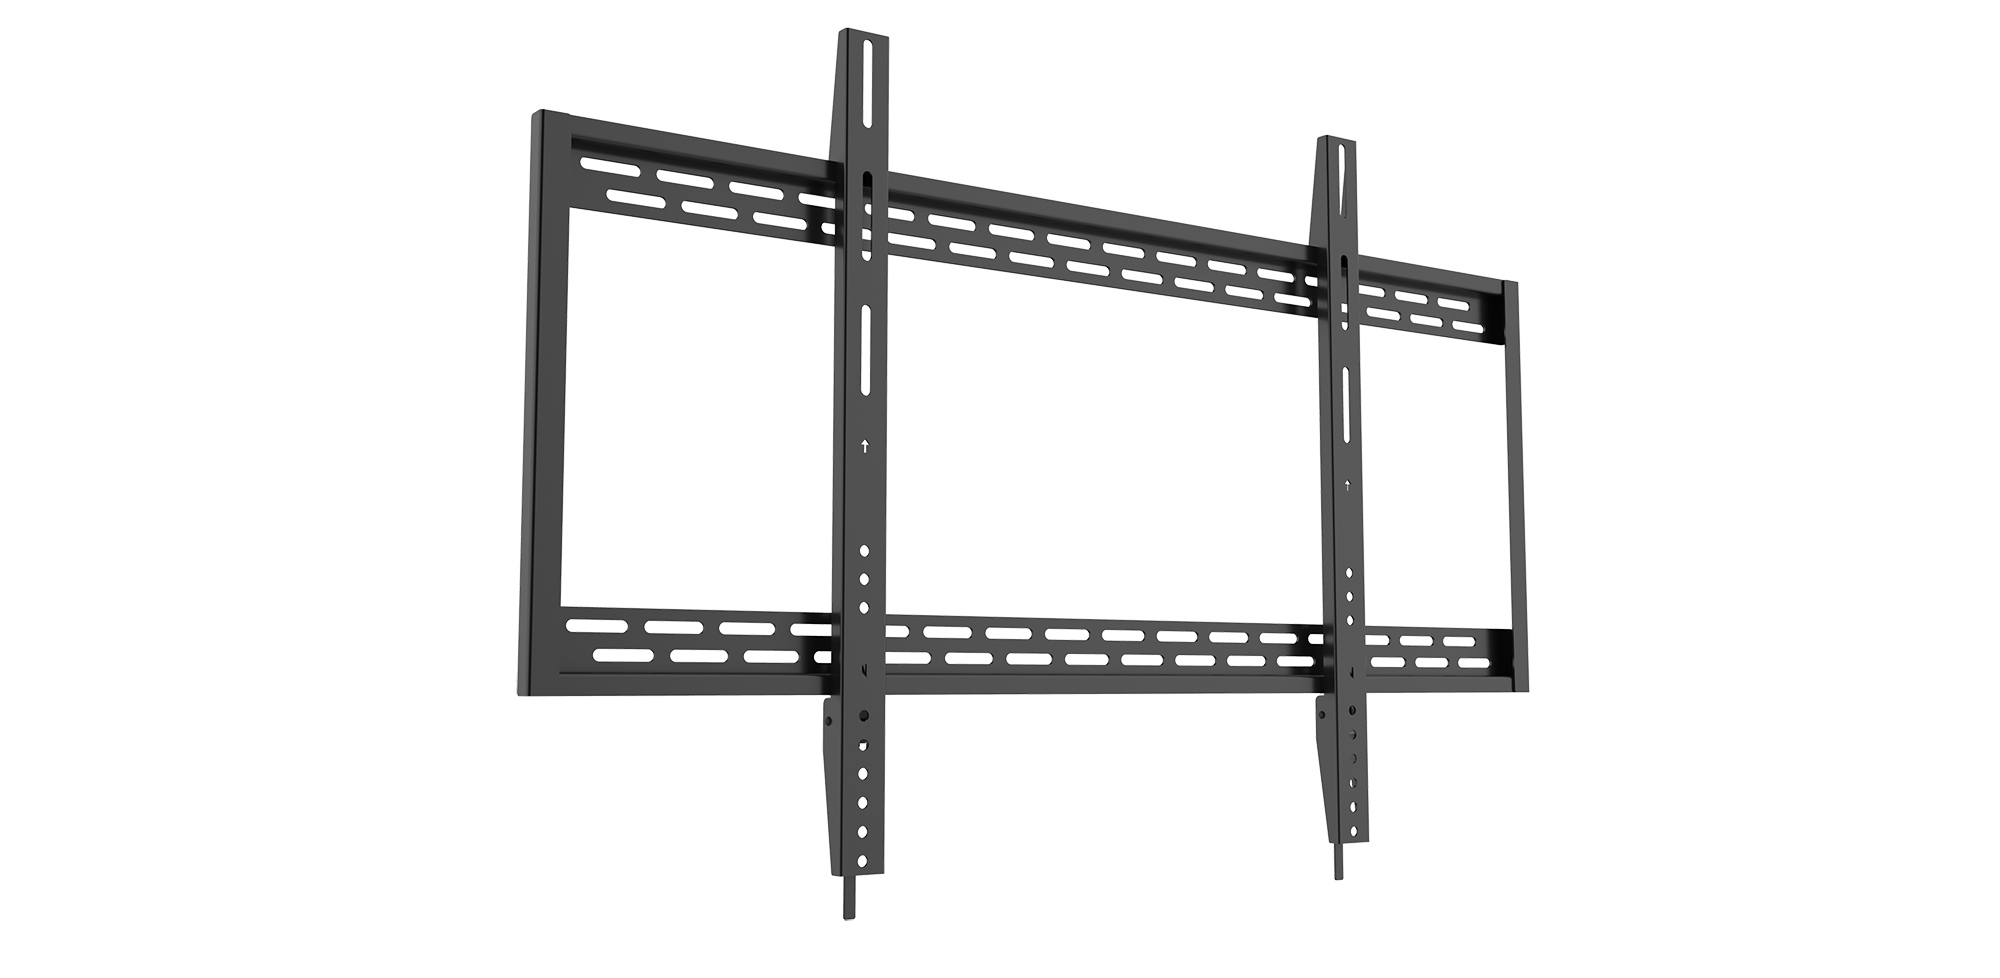 Qualgear Heavy Duty Fixed Tv Wall Mount For 60 100 Inch Flat Panel And Curved Tvs Black Qg Tm